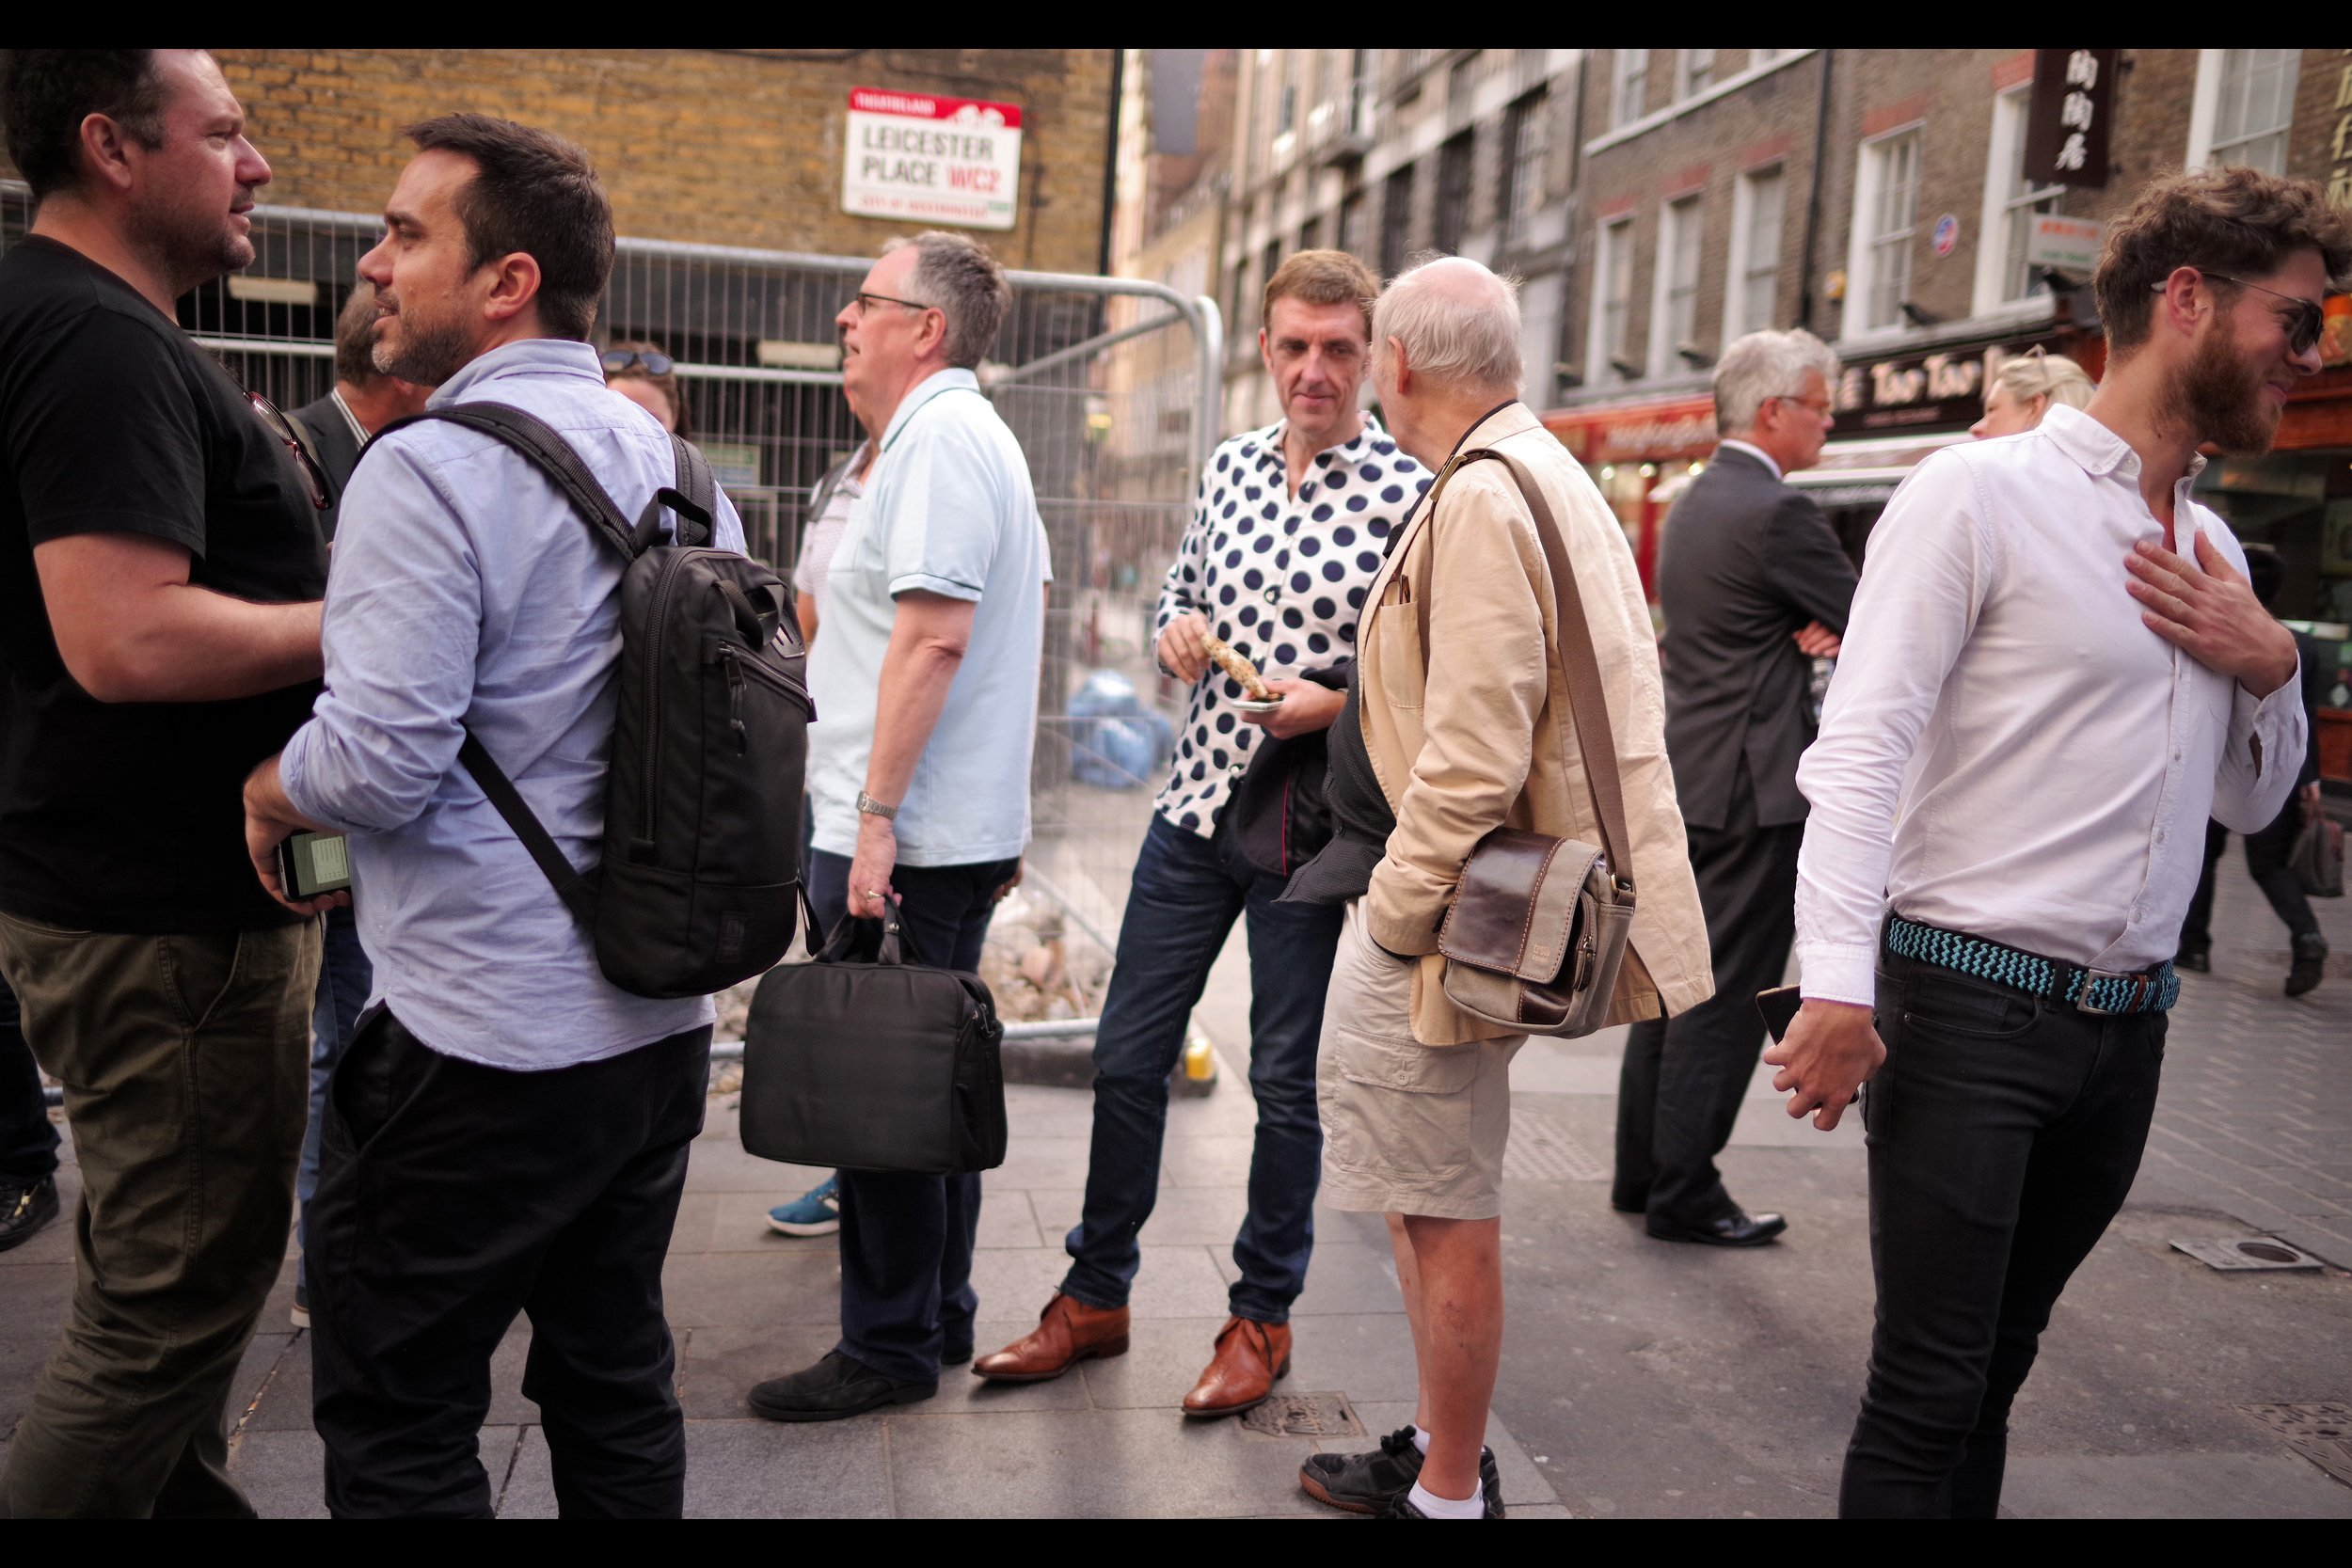 """I think the guy in the polka-dotted t-shirt might have been called """"Chris"""", but you know what? The shirt looks amazing, so I personally think it doesn't matter as much as it might otherwise."""